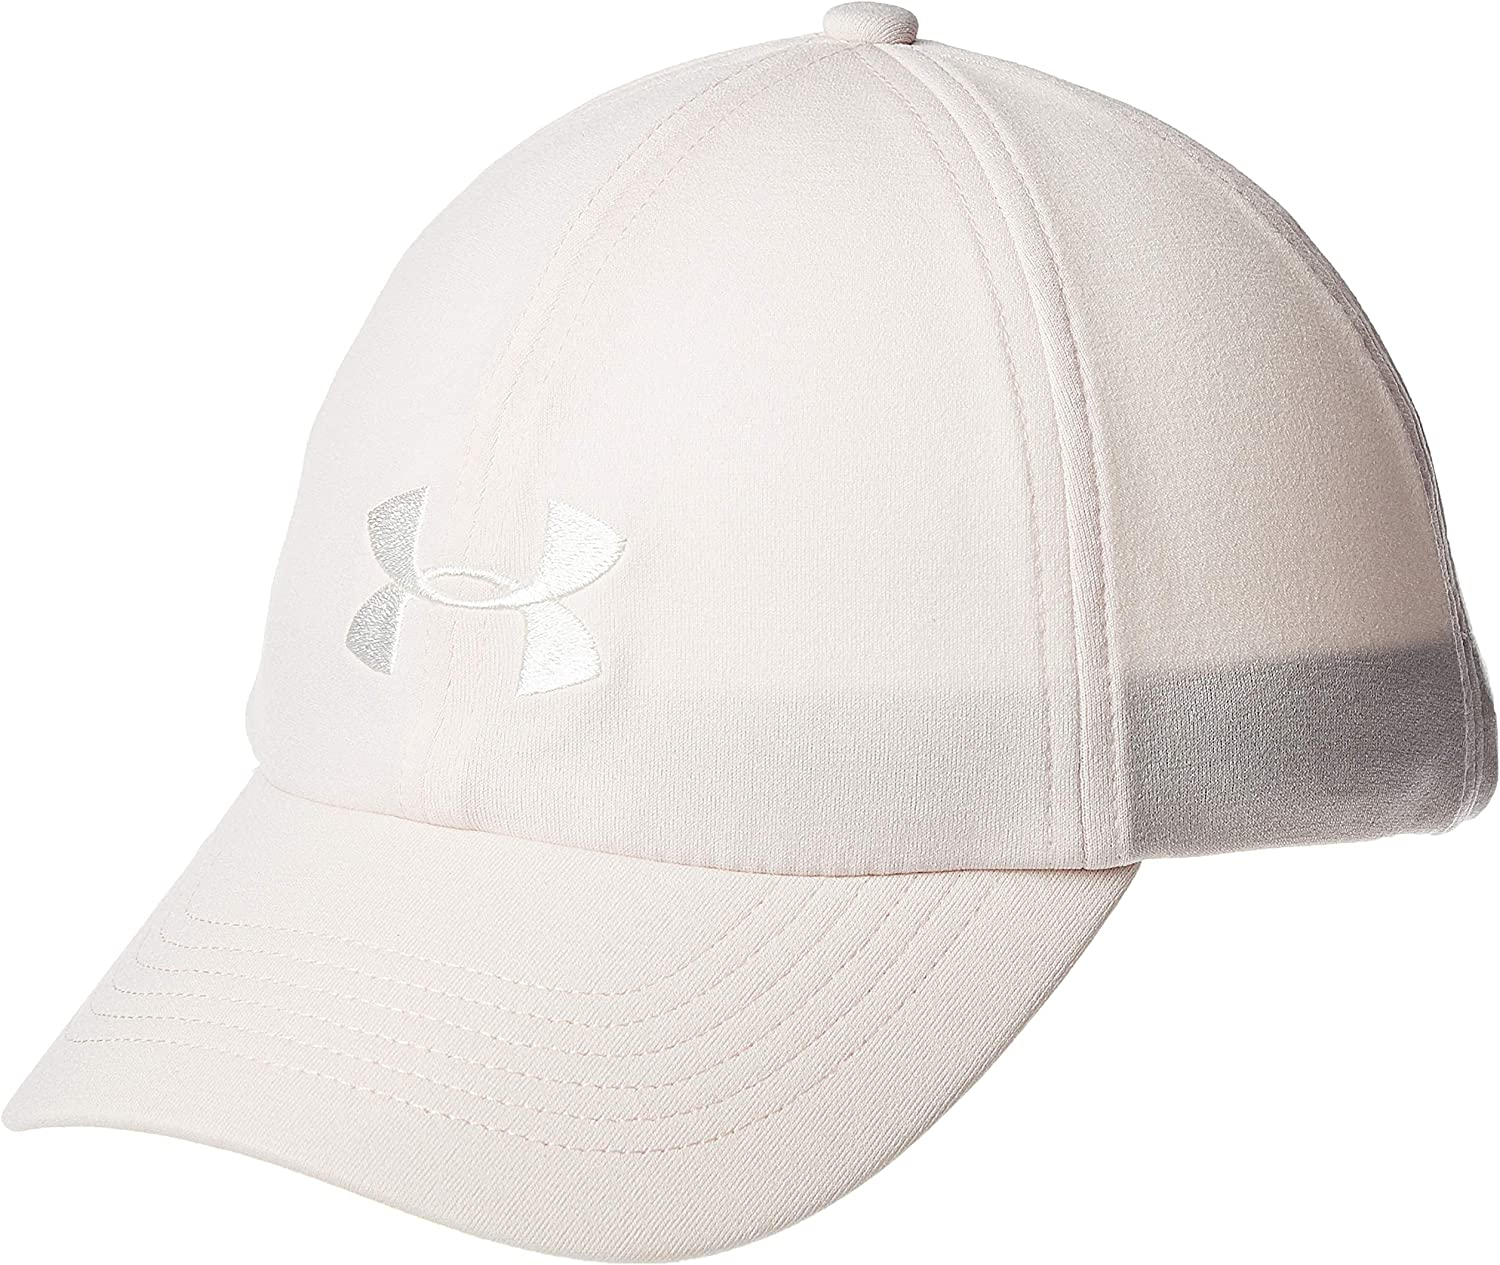 Static Blue New Under Armour Renegade Women/'s Hat White